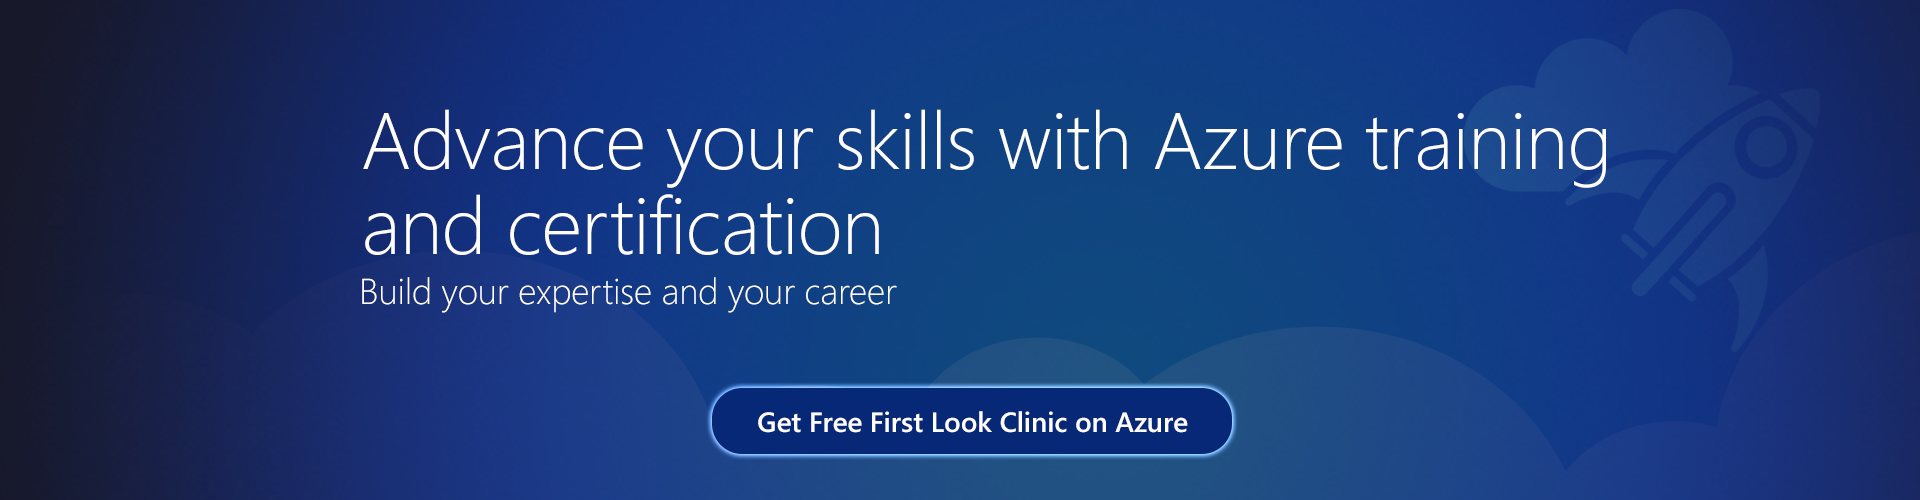 Netcom microsoft azure certification training whether youre new to azure or already a cloud professional training is one of the best investments you can make in your career xflitez Images